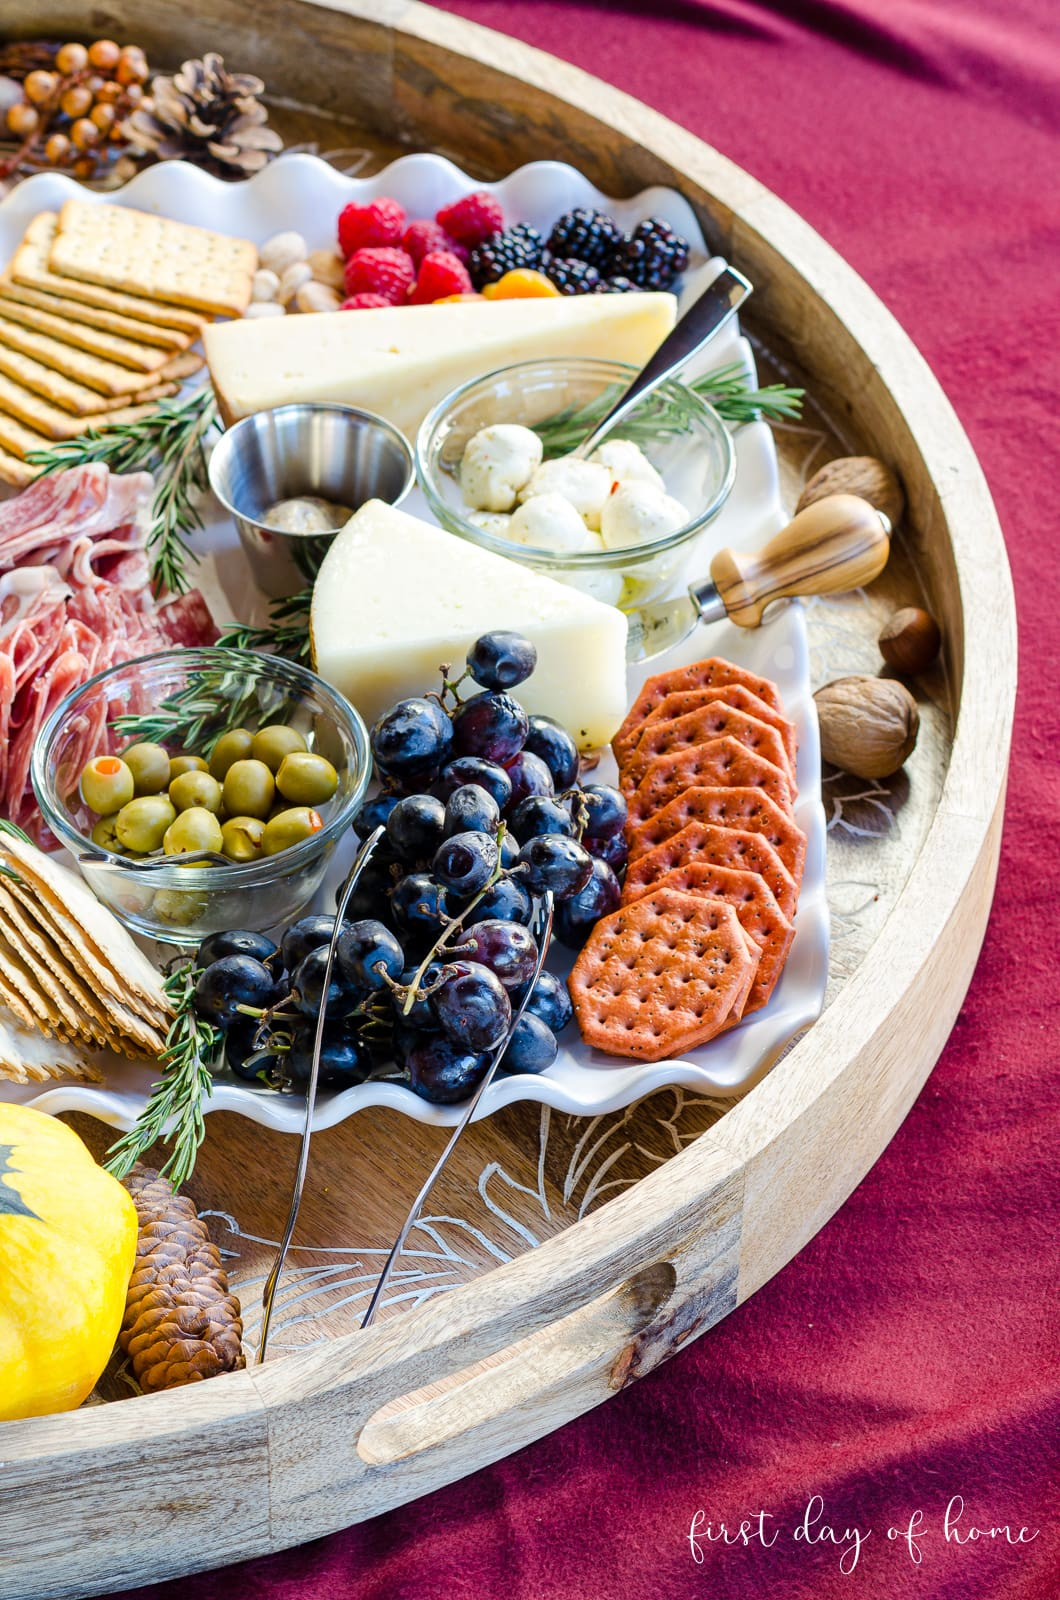 Charcuterie board with cheeses, crackers, grapes, mozzarella balls, olives and deli meats.